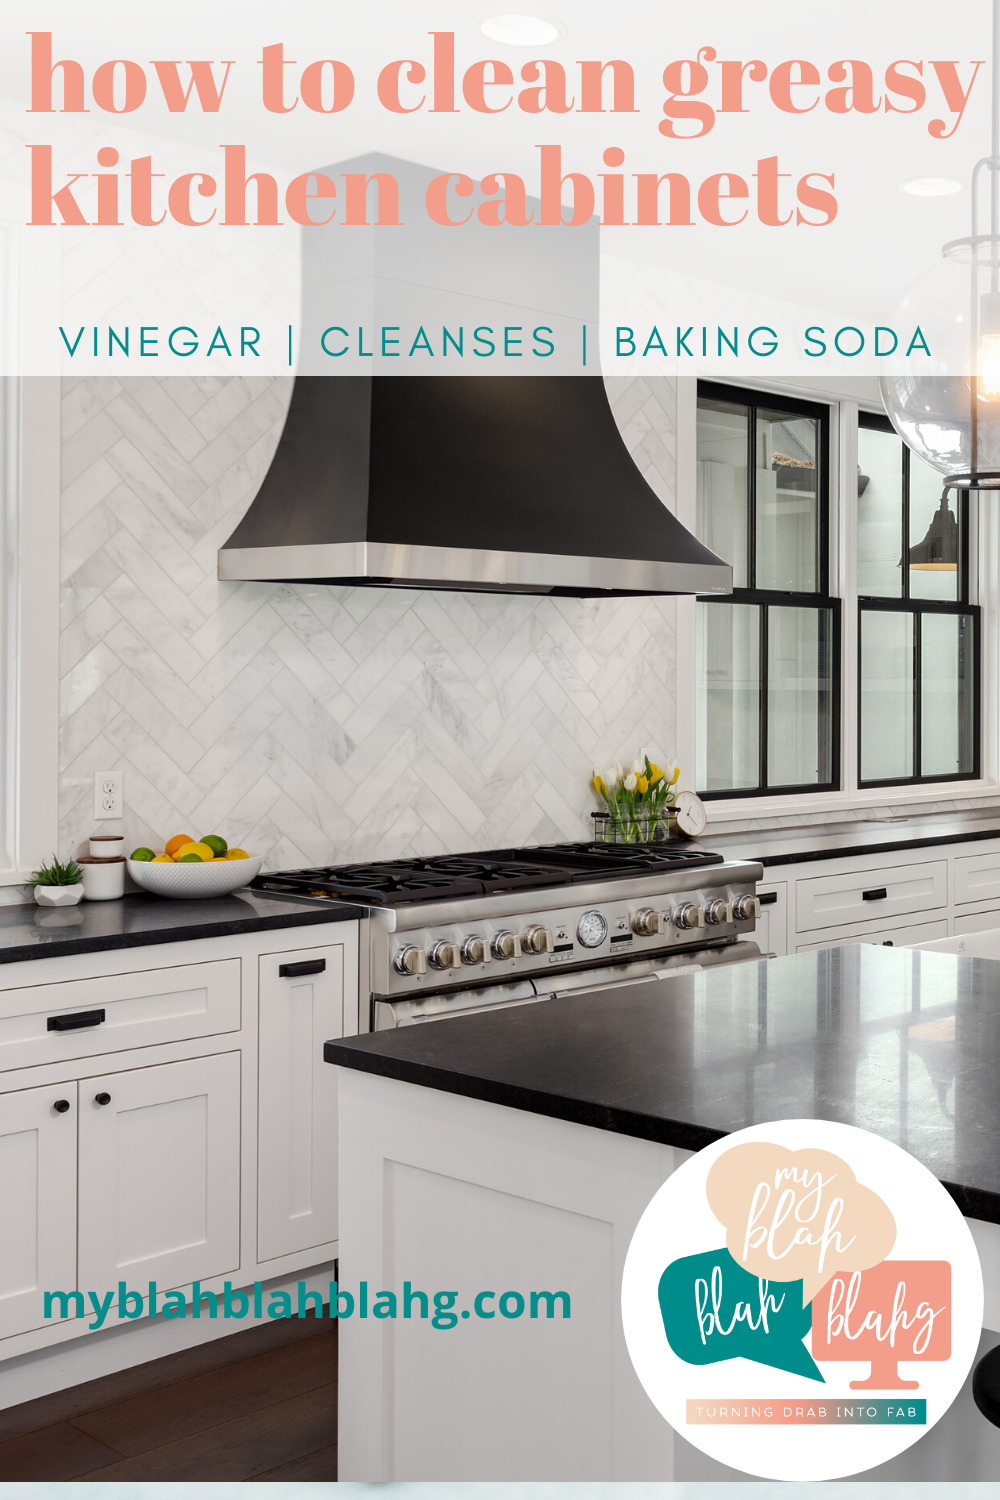 How To Clean Greasy Kitchen Cabinets Vinegar Baking Soda Cleaning Wrappedinrust Com